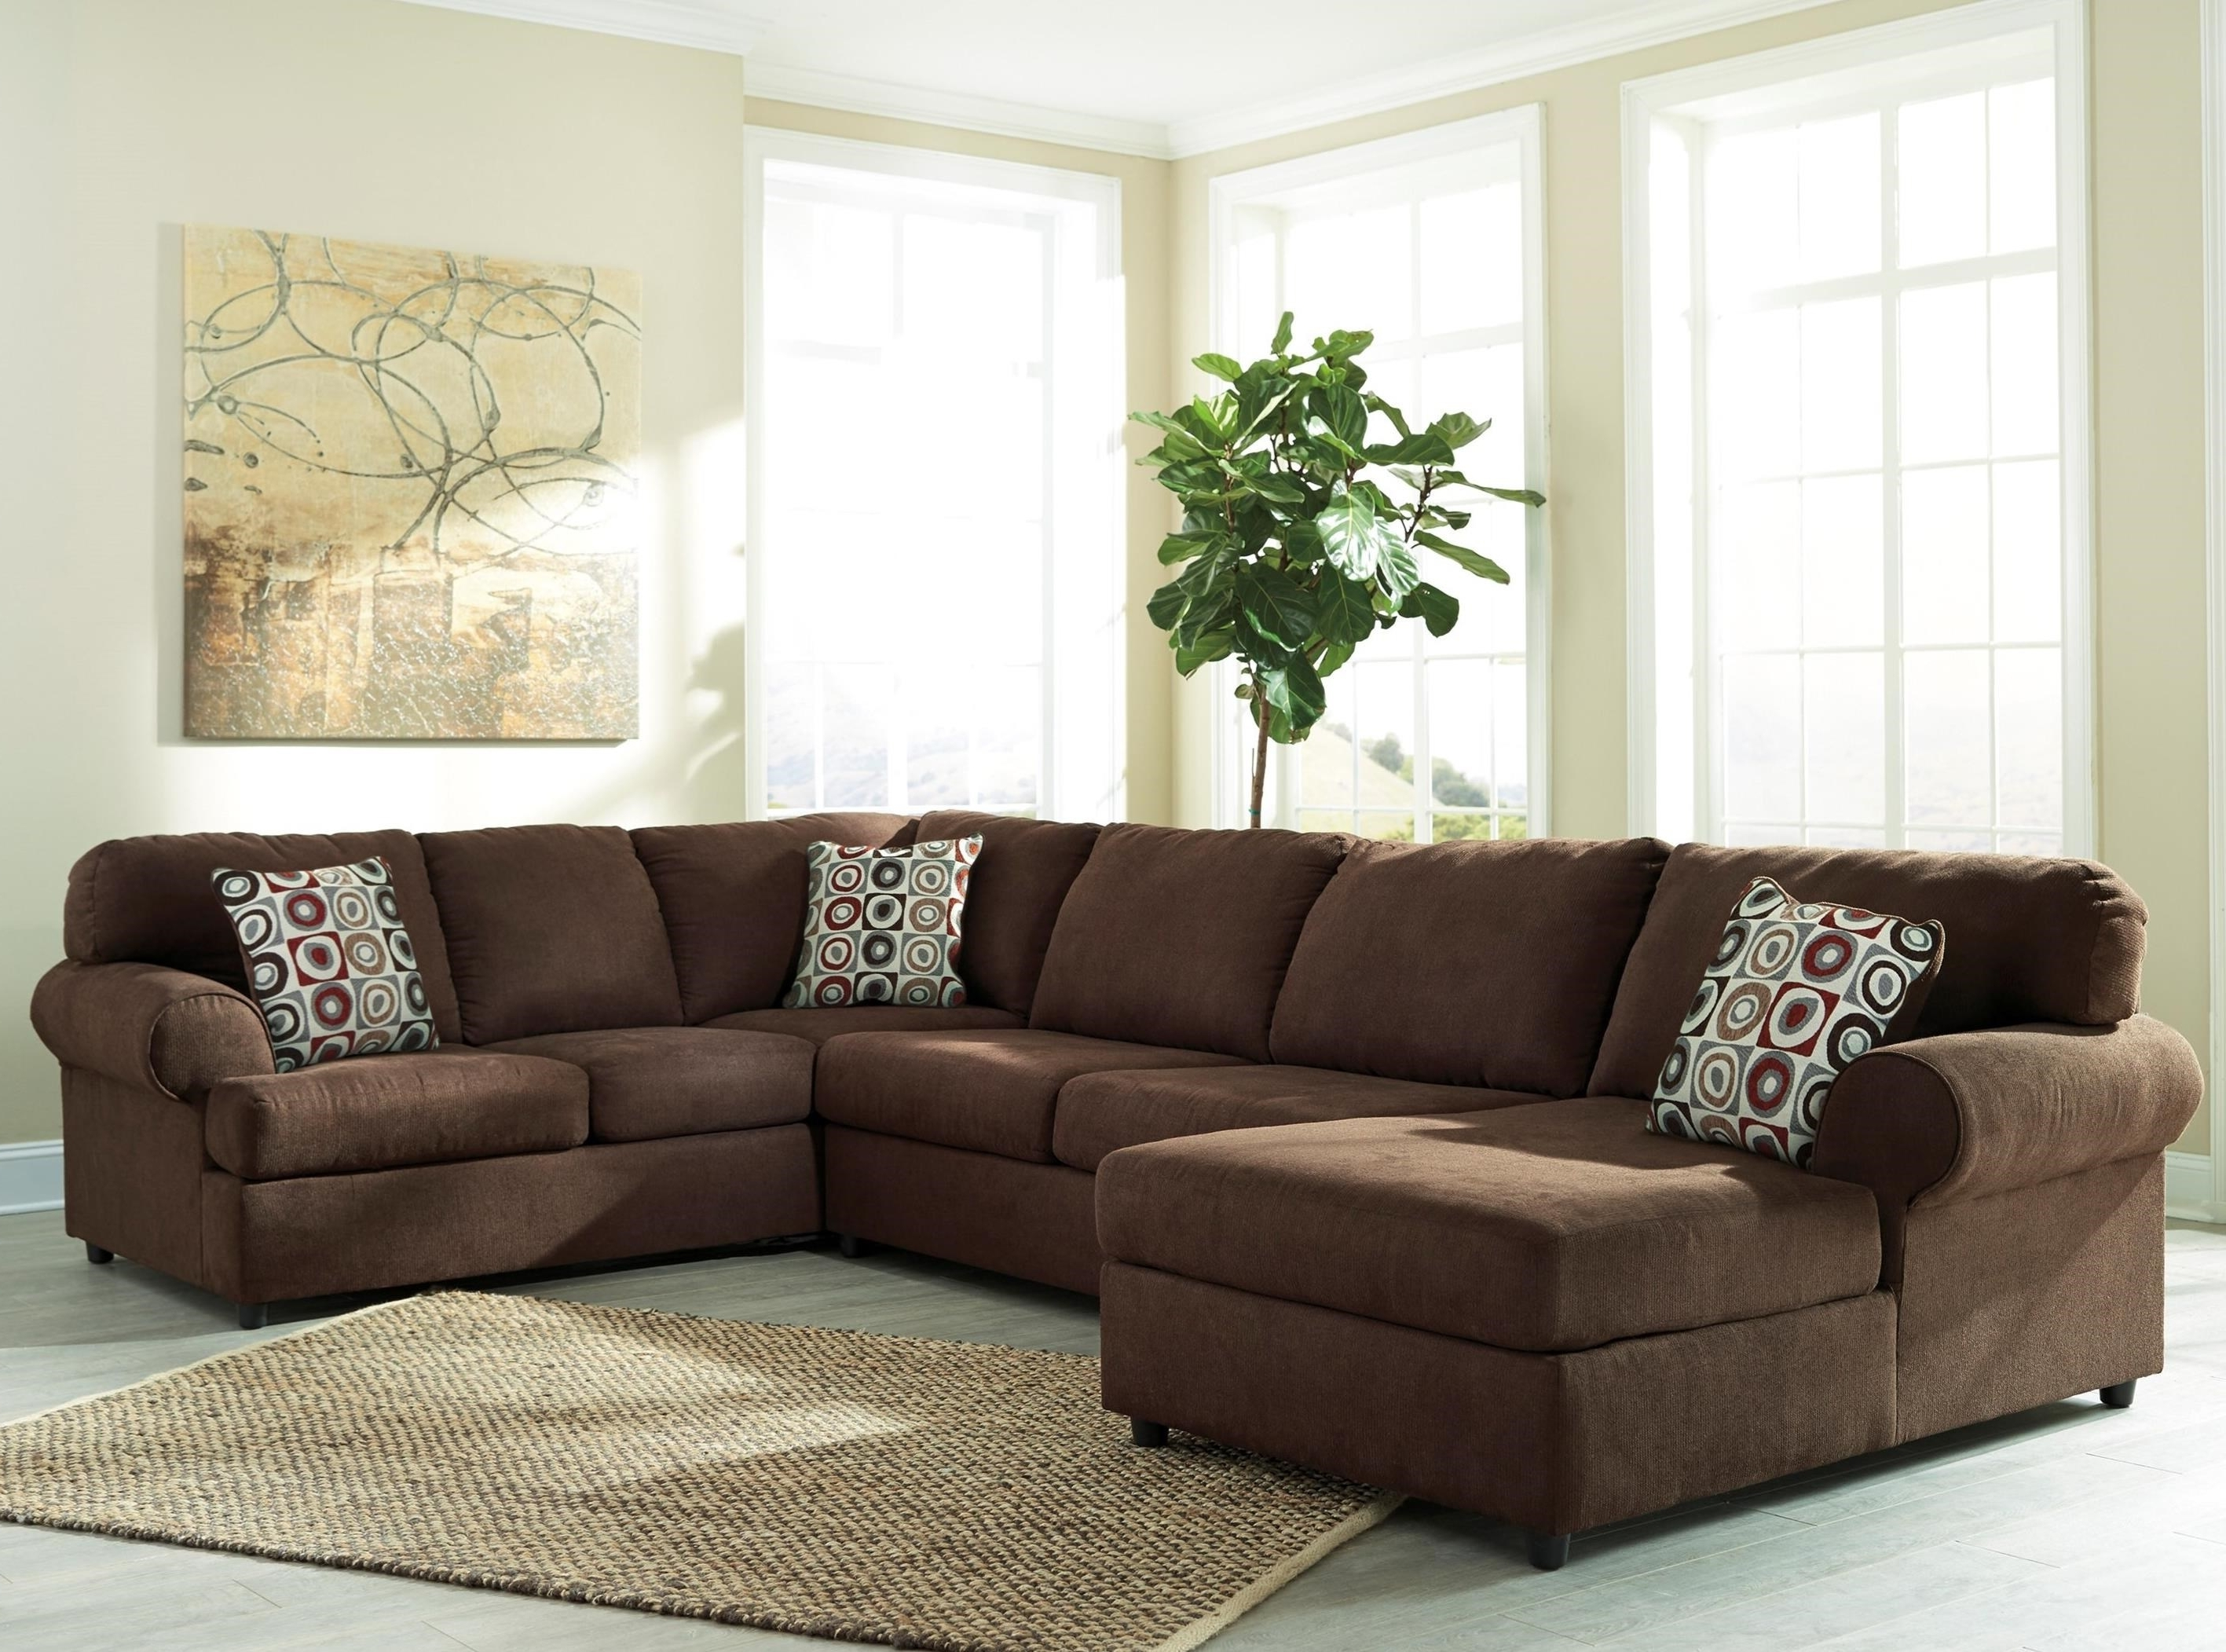 Well Known Ashley Chaise Sofas With Regard To Signature Designashley Jayceon 3 Piece Sectional With Left (View 14 of 15)